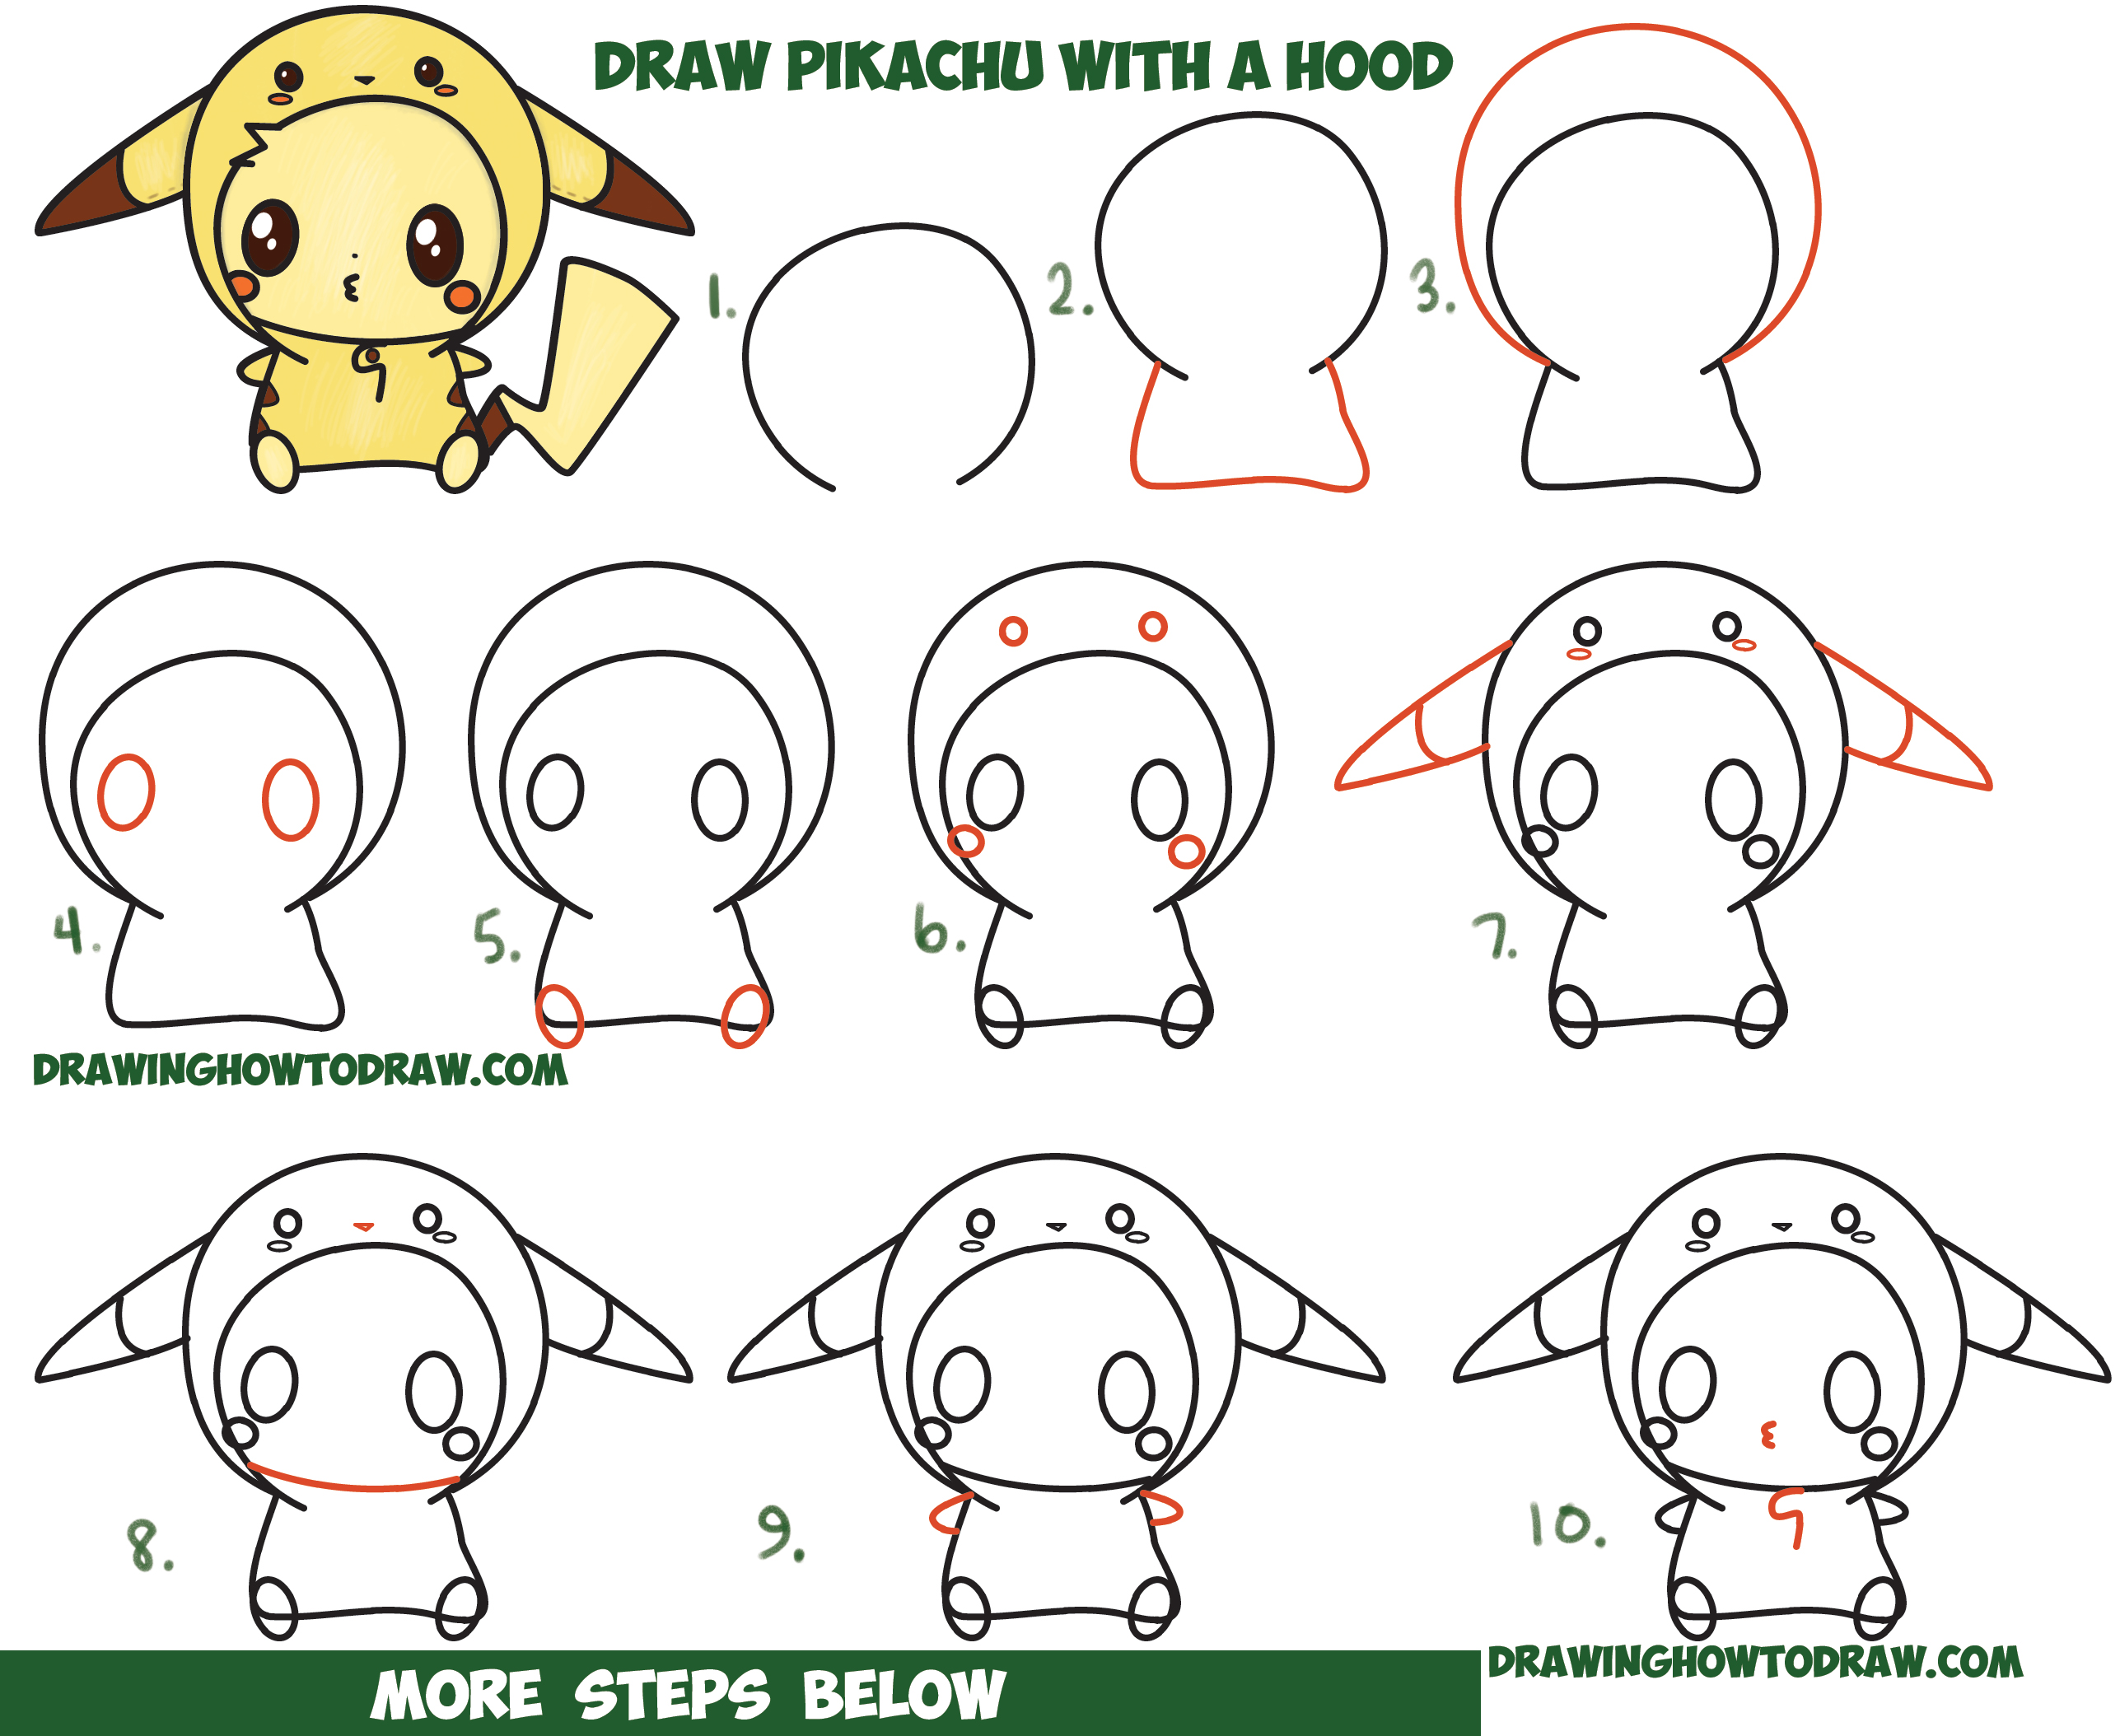 how to draw cute pikachu with costume hood from pokemon kawaii chibi style